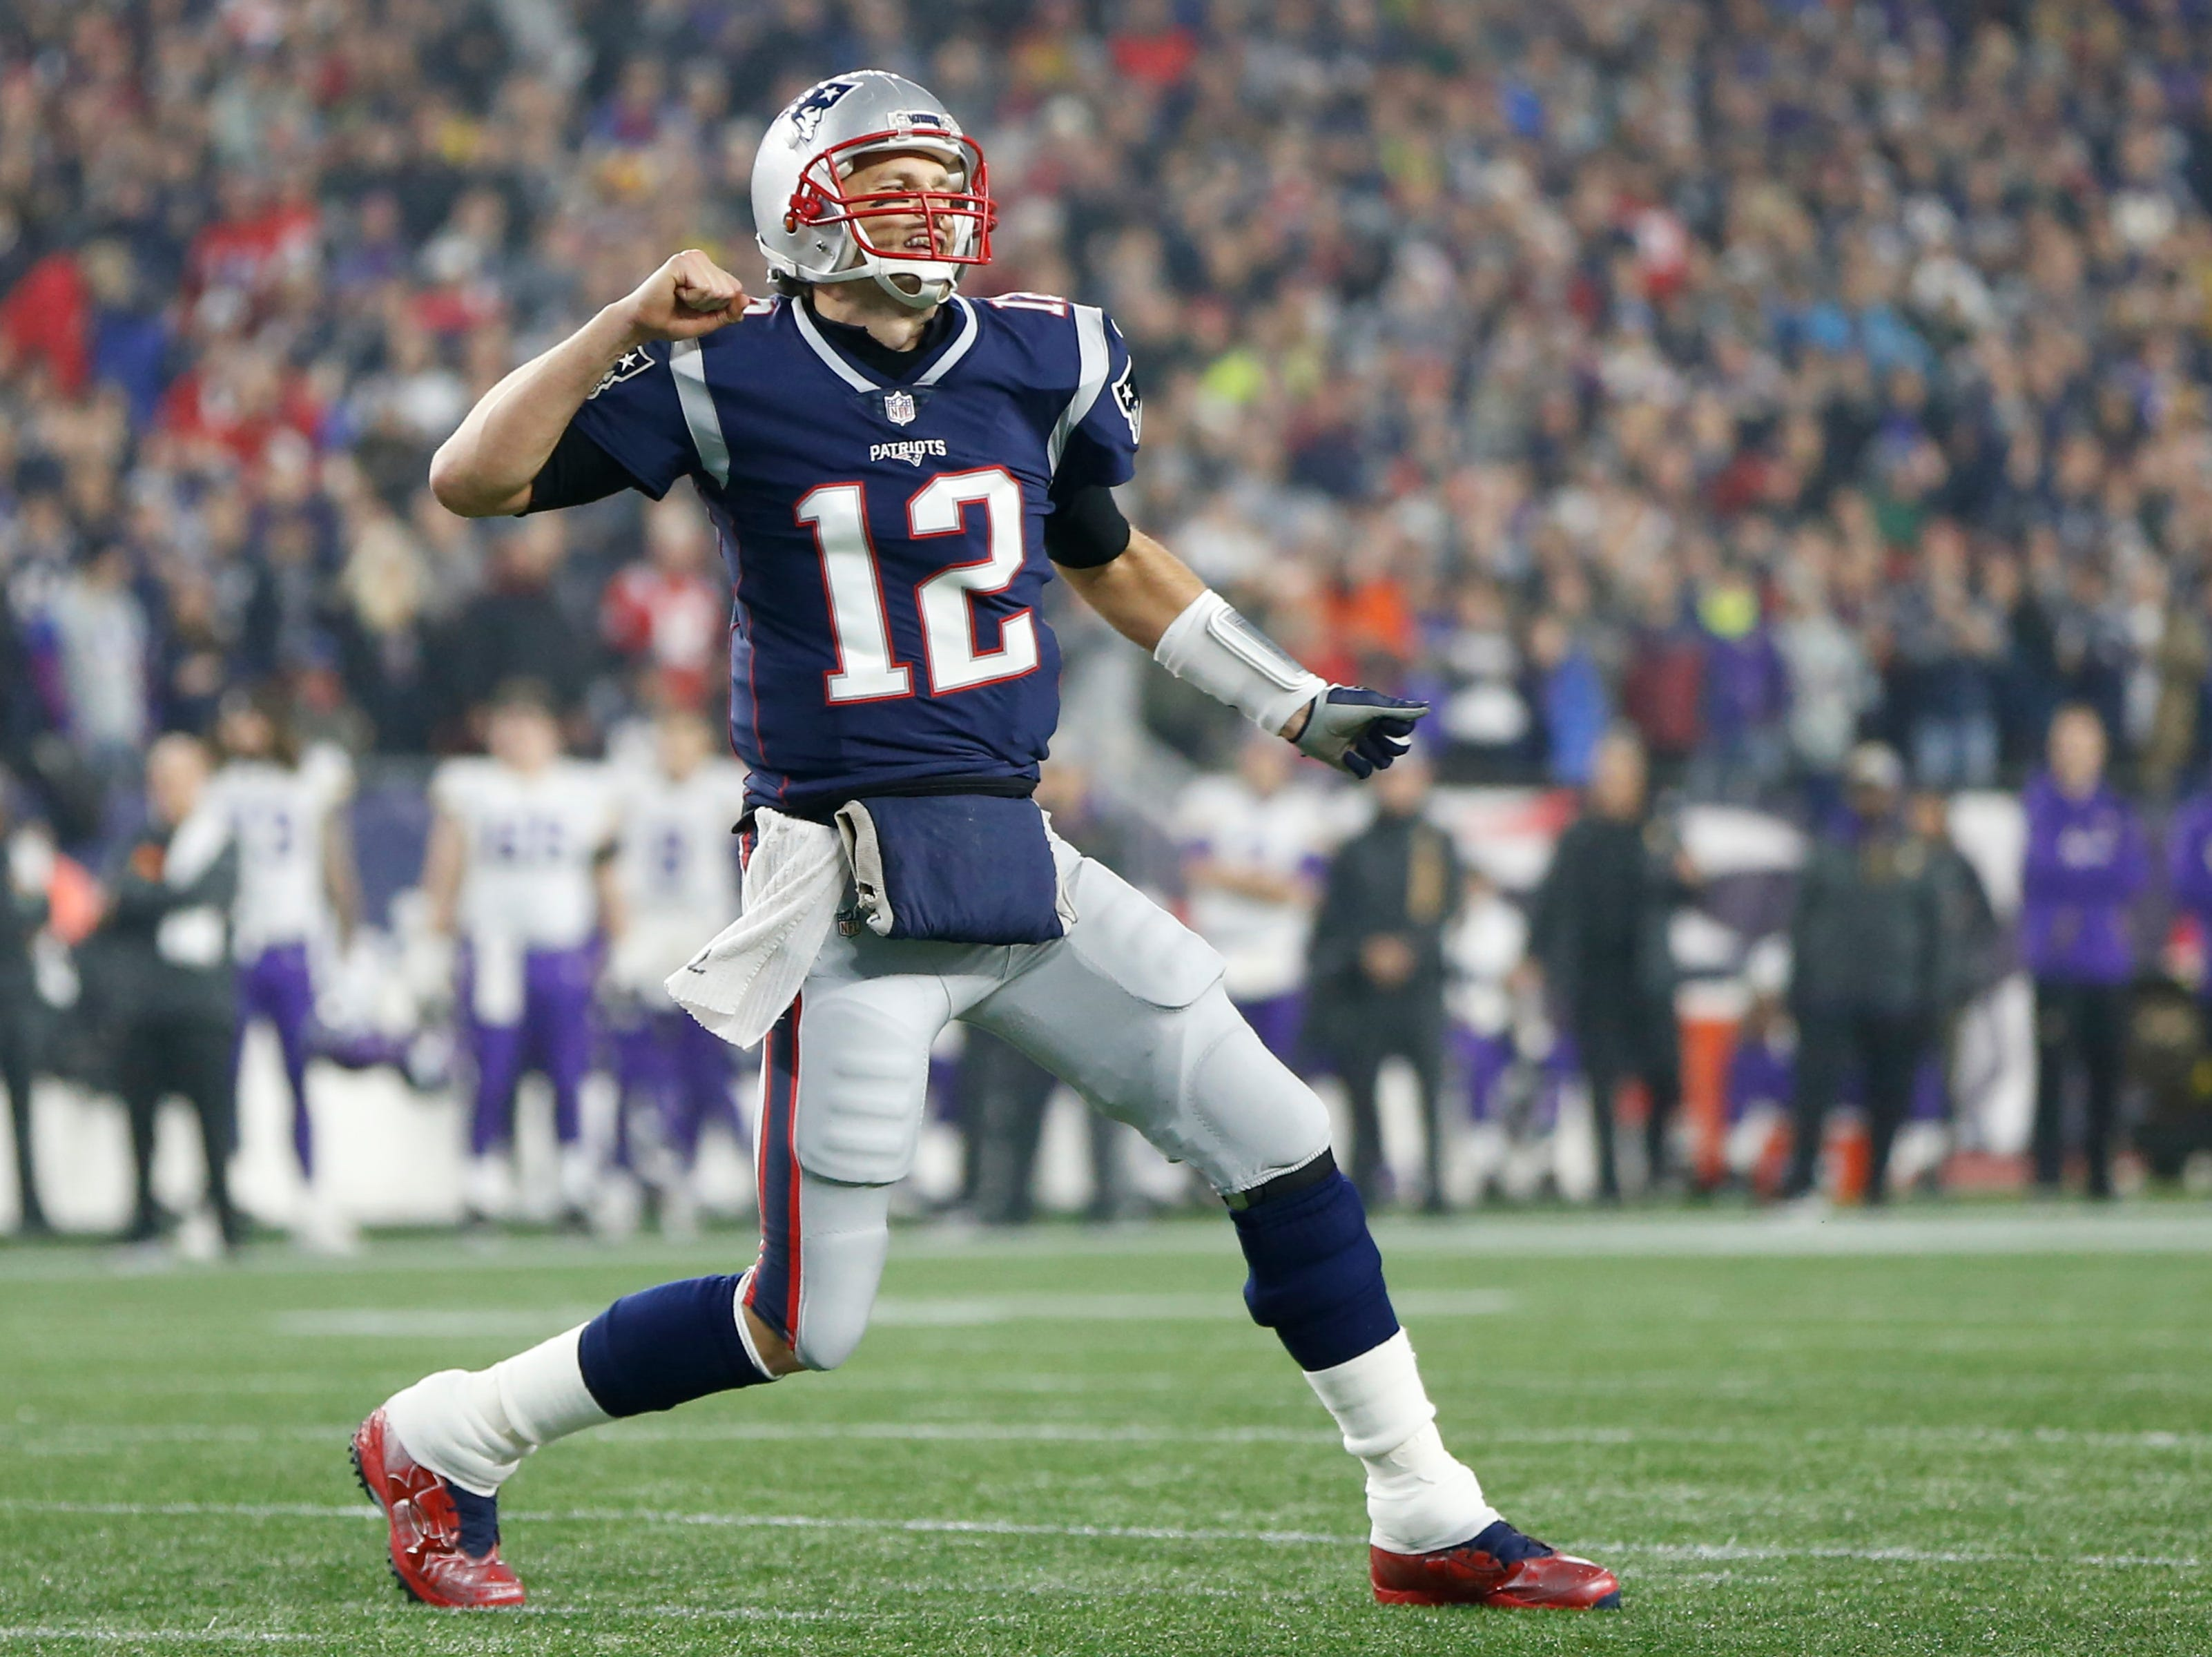 Tom Brady reacts after a touchdown in the first quarter against the Vikings.